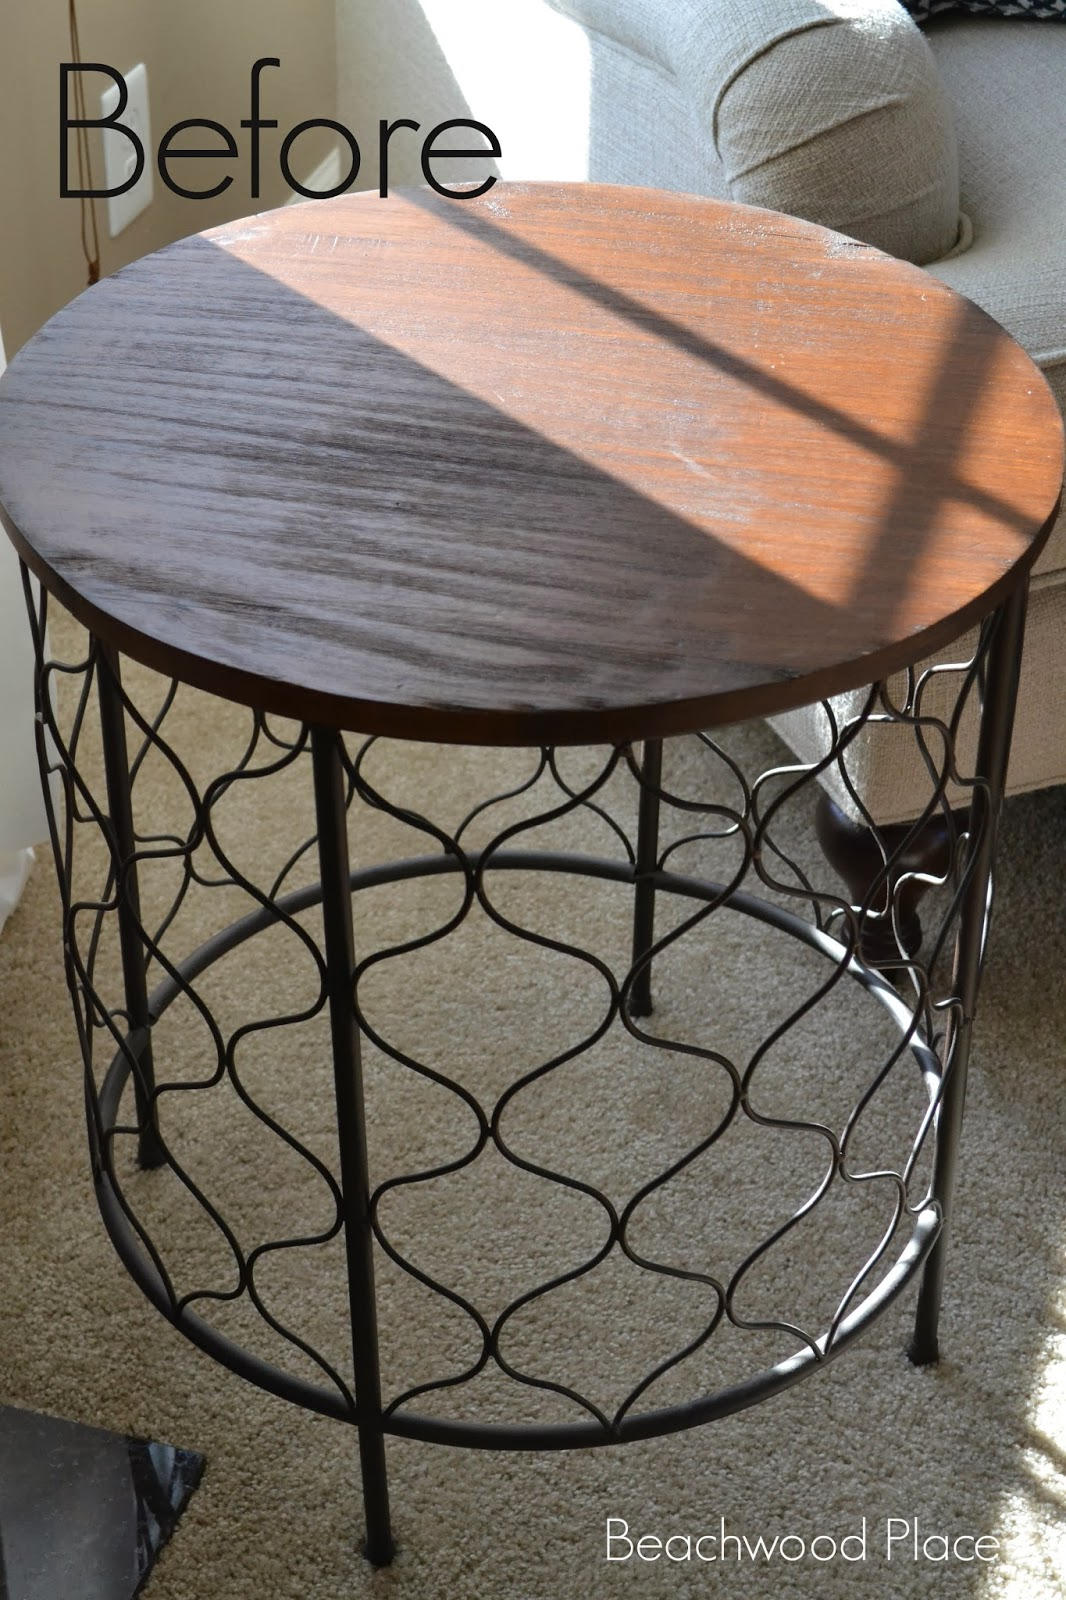 beachwood place diy coastal compass table beforetable painted metal accent took while decide what wanted with this after scrolling through the internet looking for inspiration